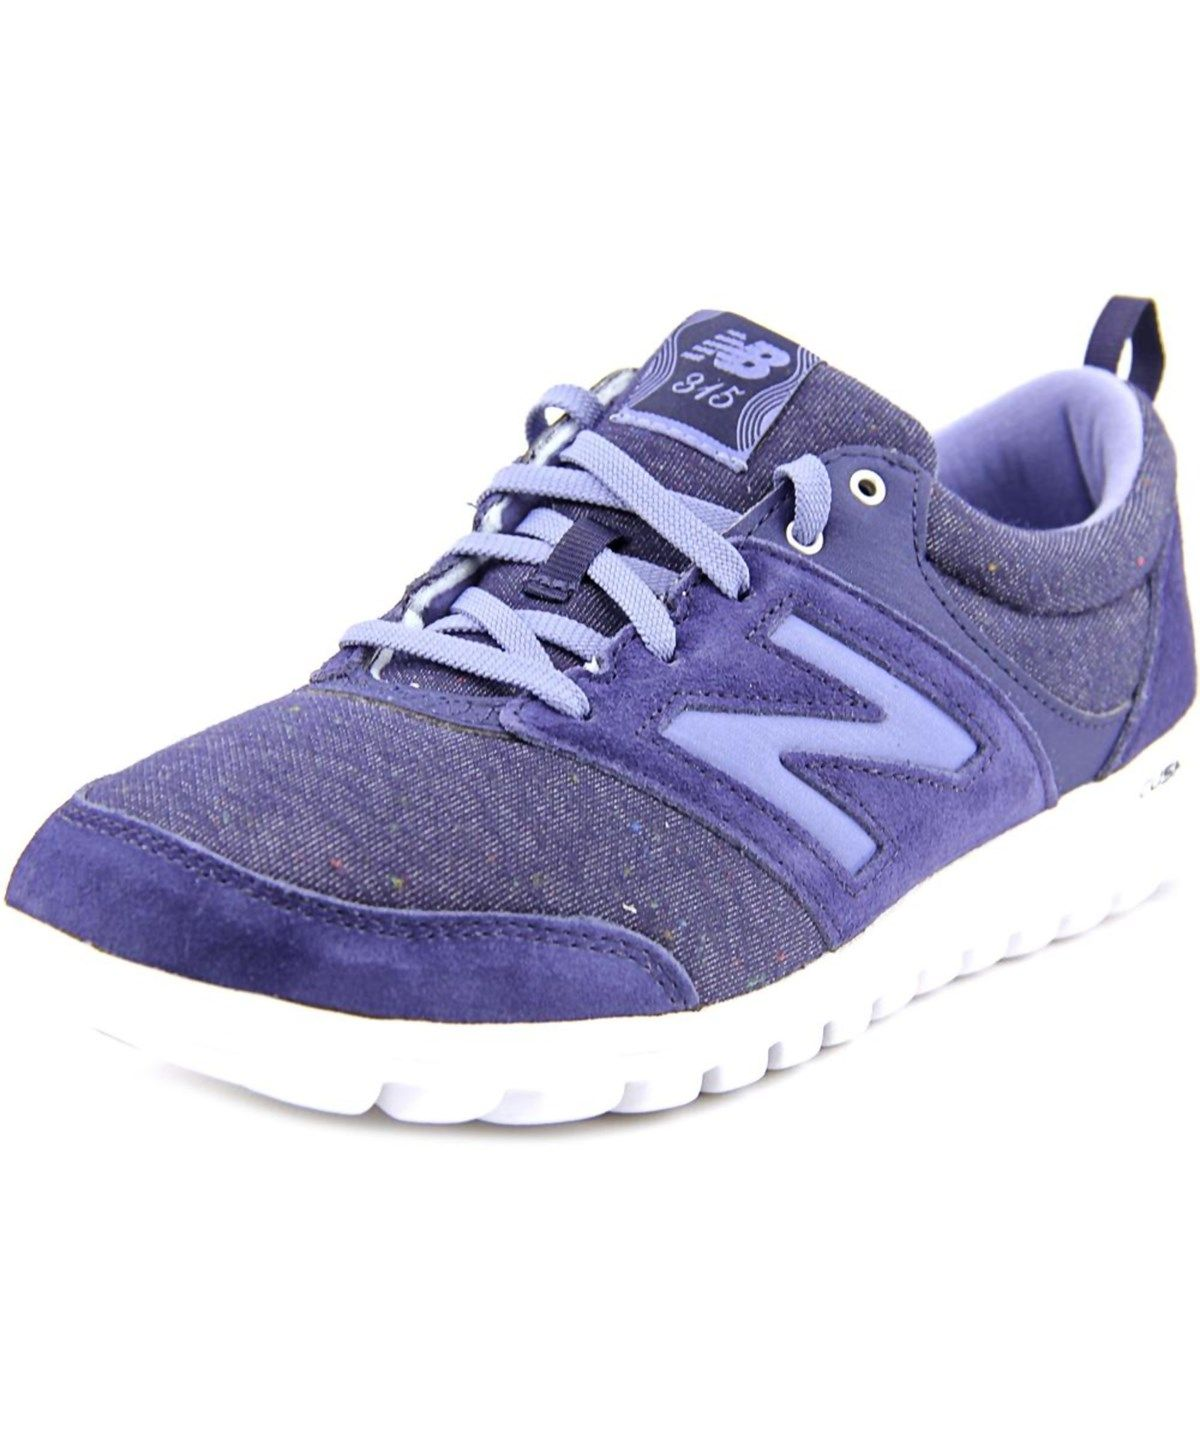 Blue sneakers, Sneakers, New balance